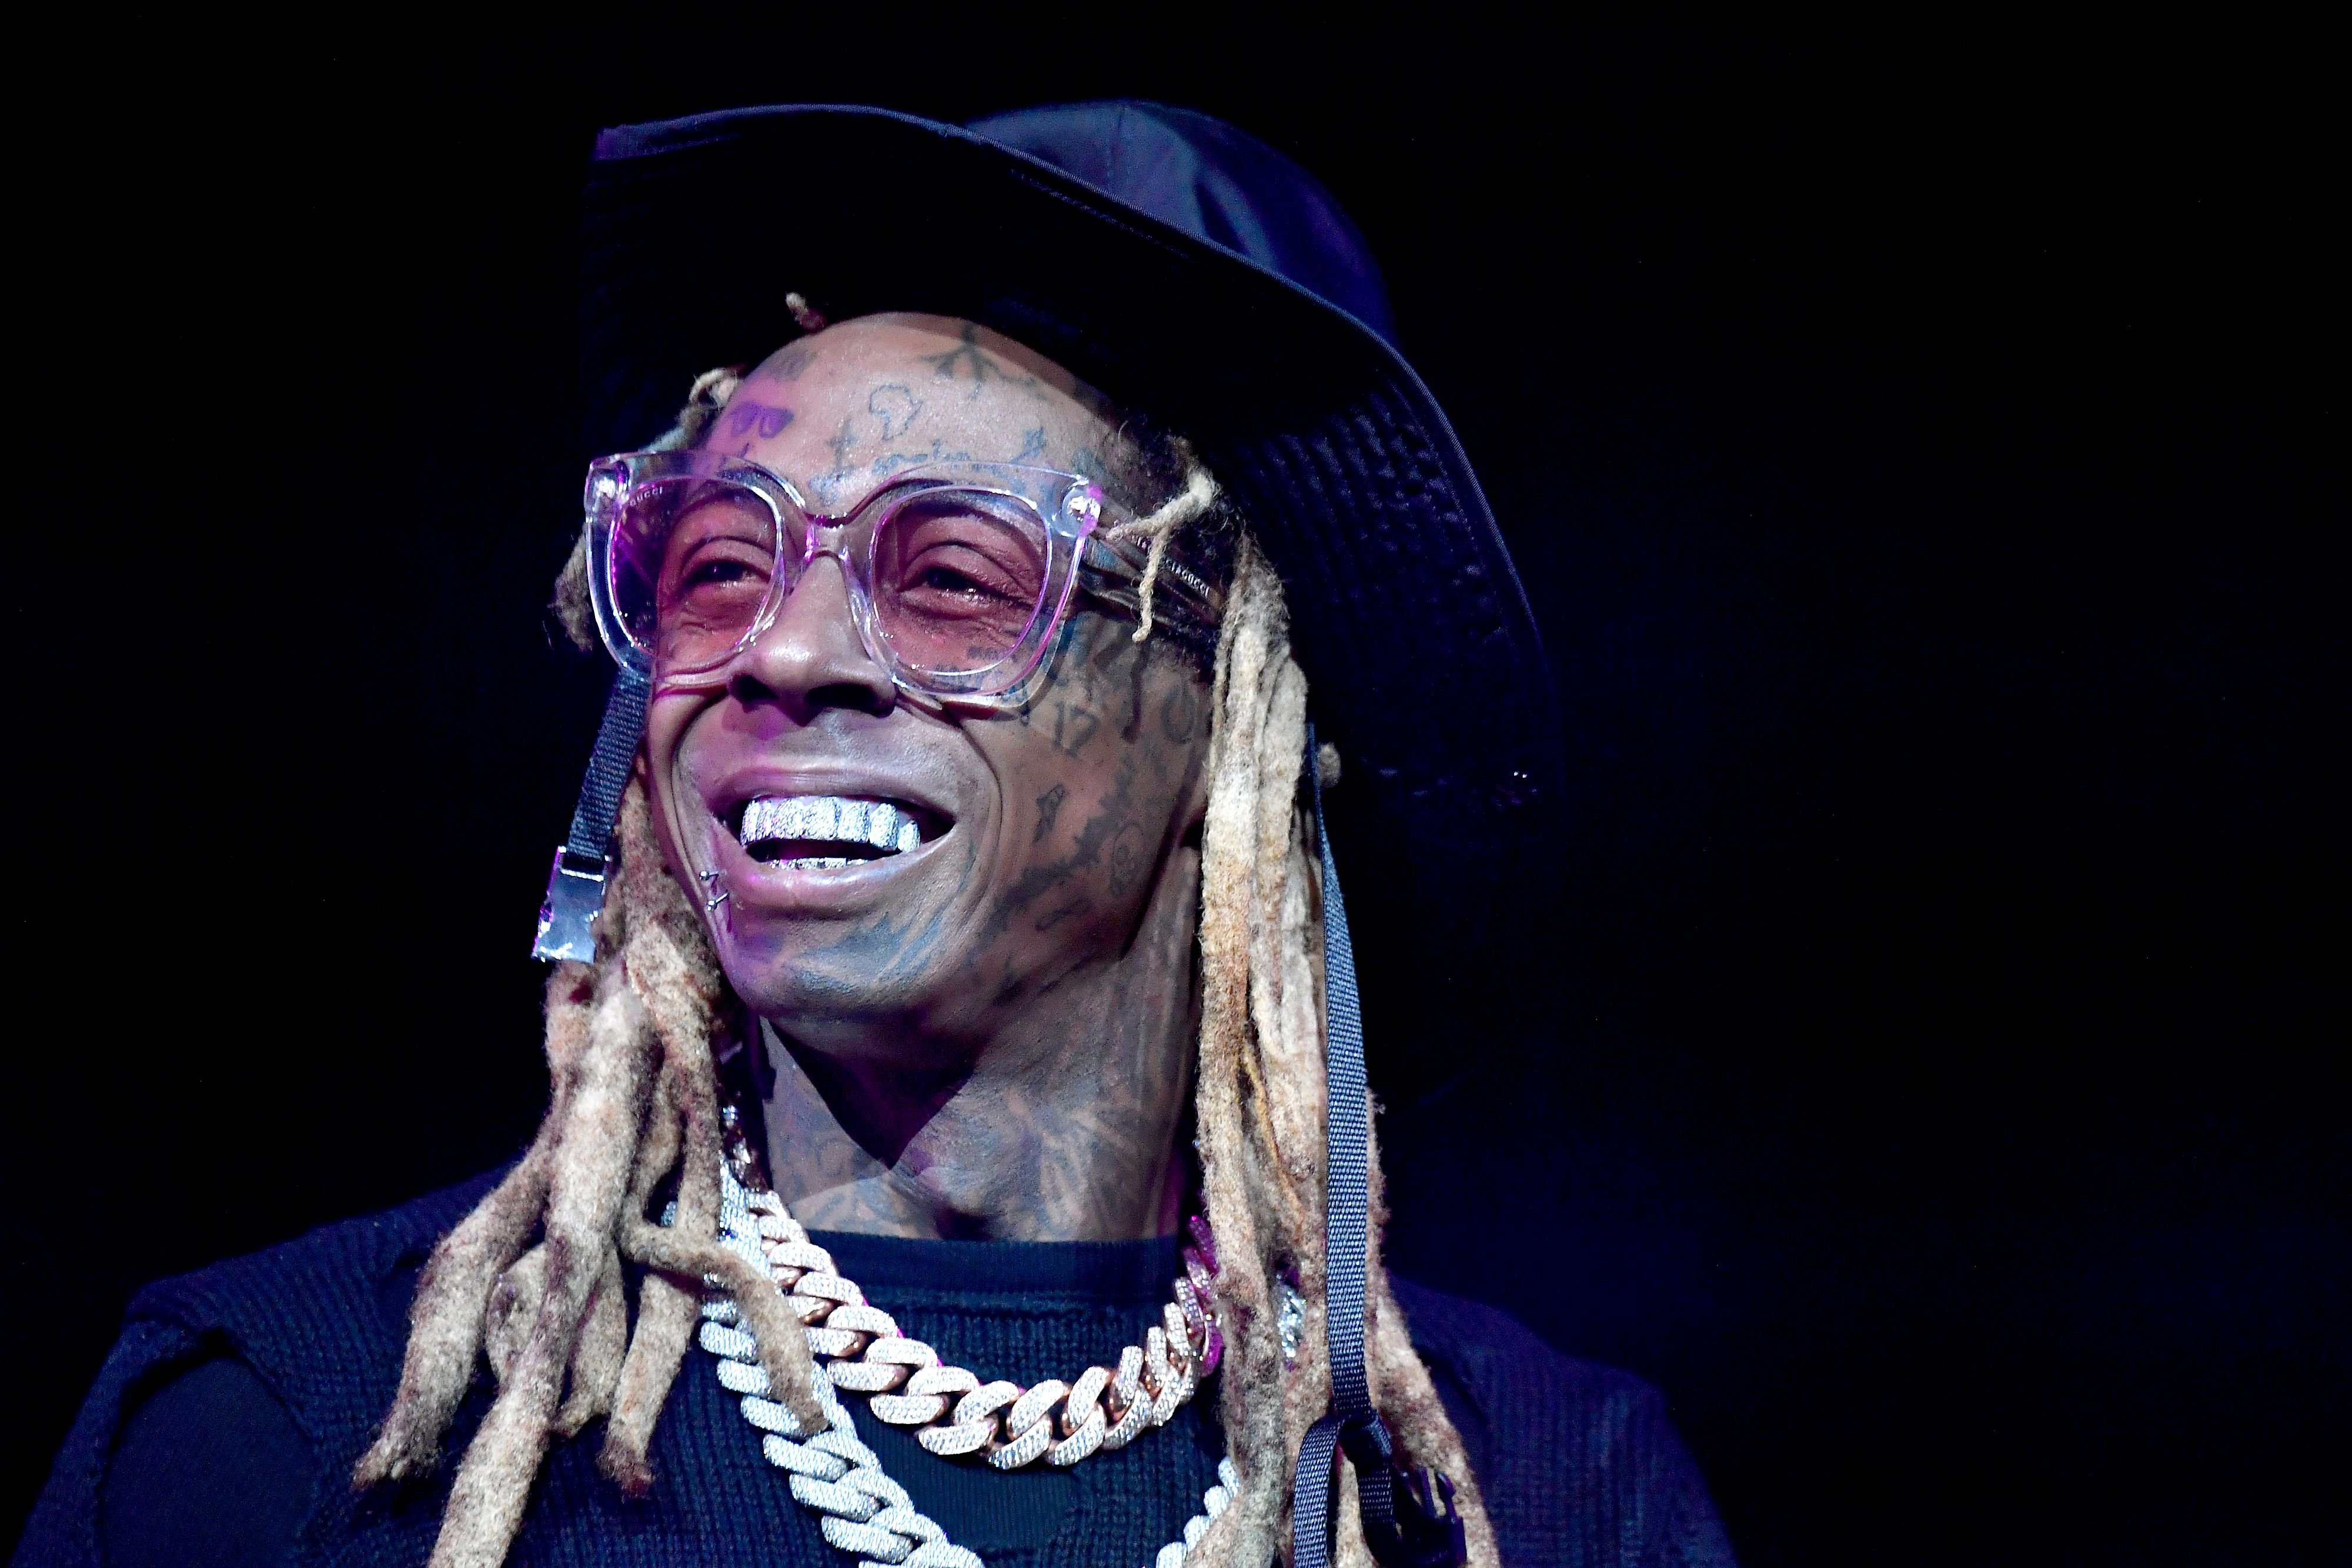 Lil Wayne performs at the Bud Light Super Bowl Music Fest on January 30, 2020. | Source: Getty Images